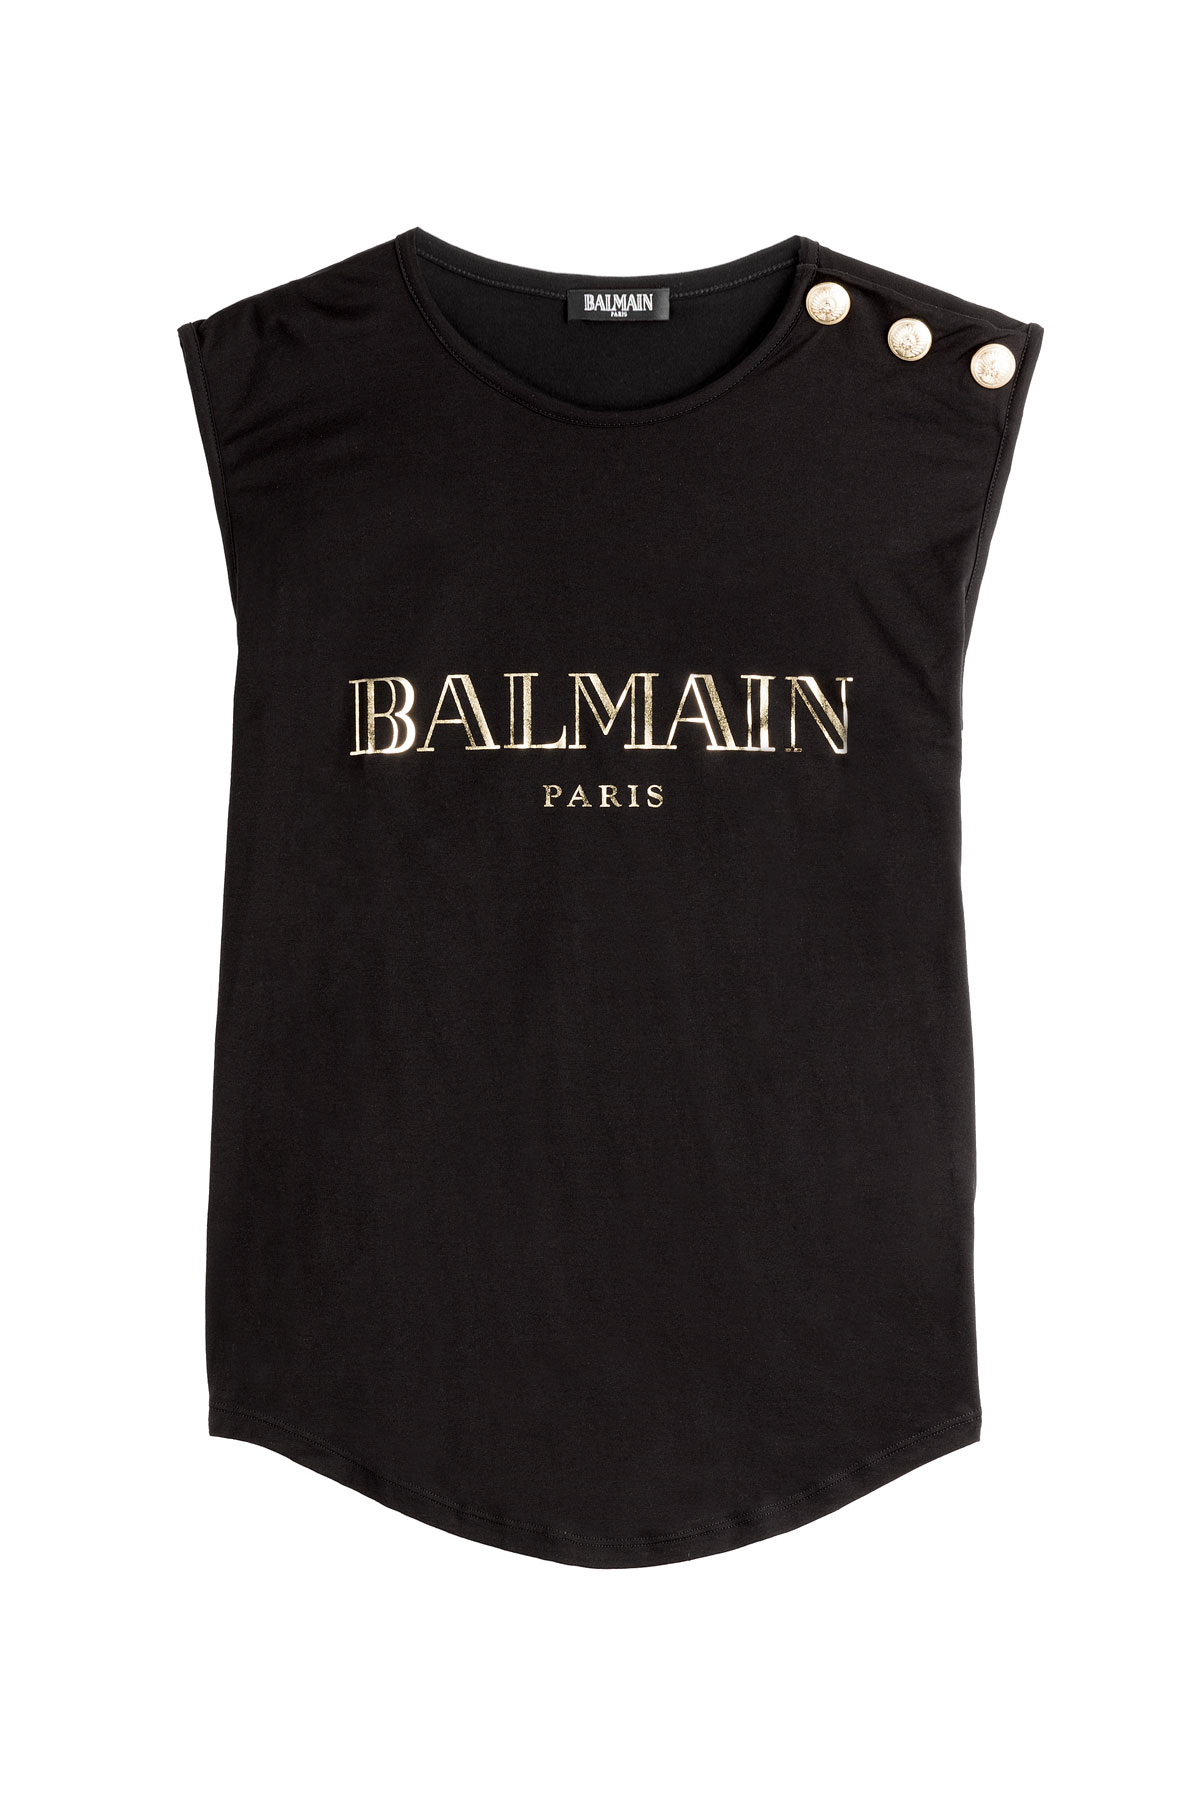 balmain logo t shirt black vector logos. Black Bedroom Furniture Sets. Home Design Ideas